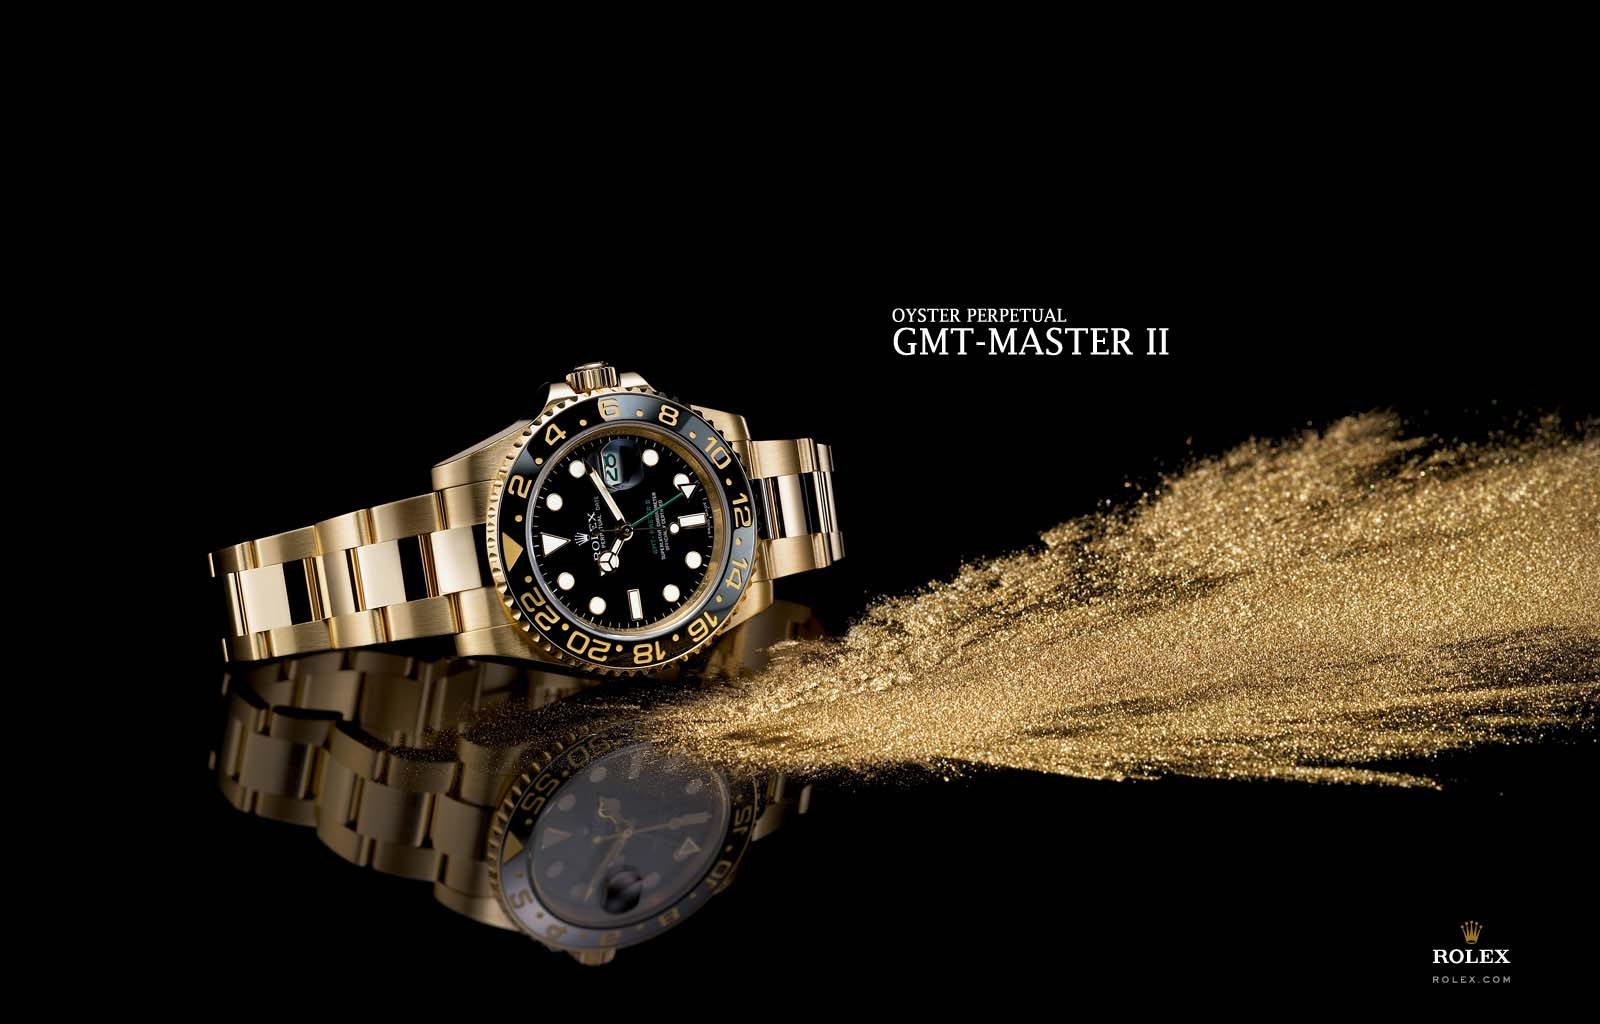 Rolex wallpapers wallpaper cave for Expensive wallpaper brands